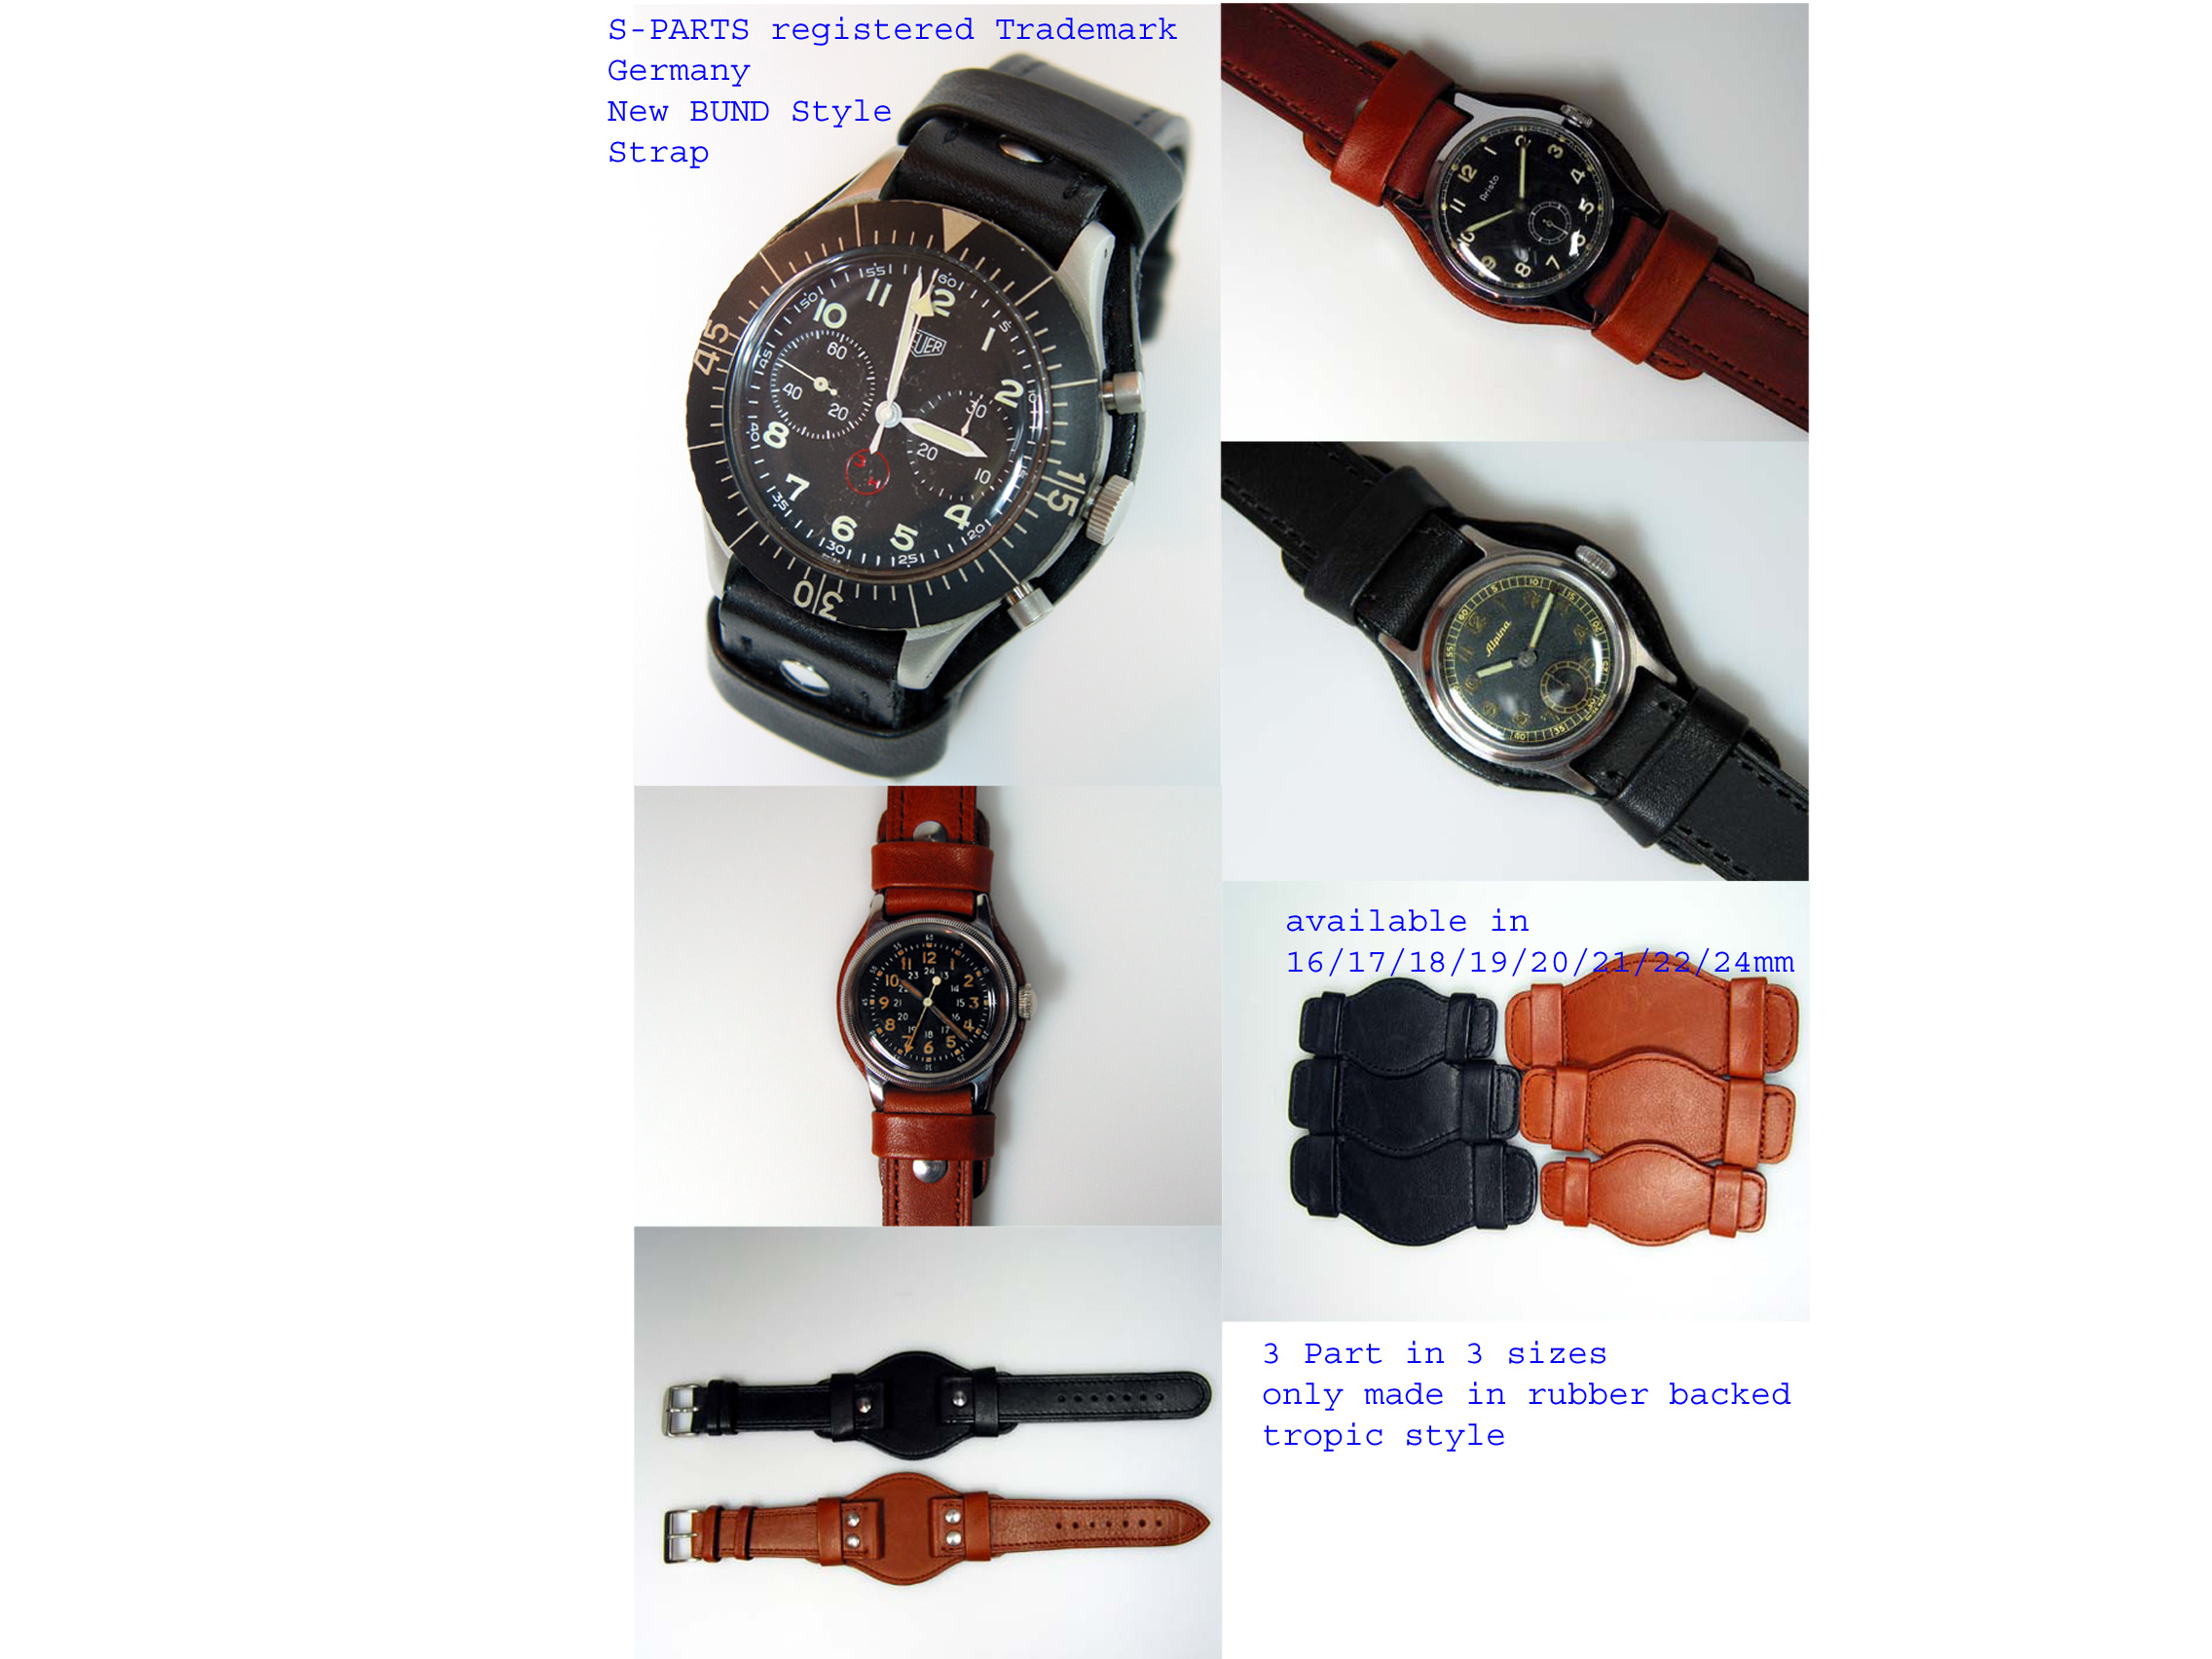 Brand Hand Watches And Their Price